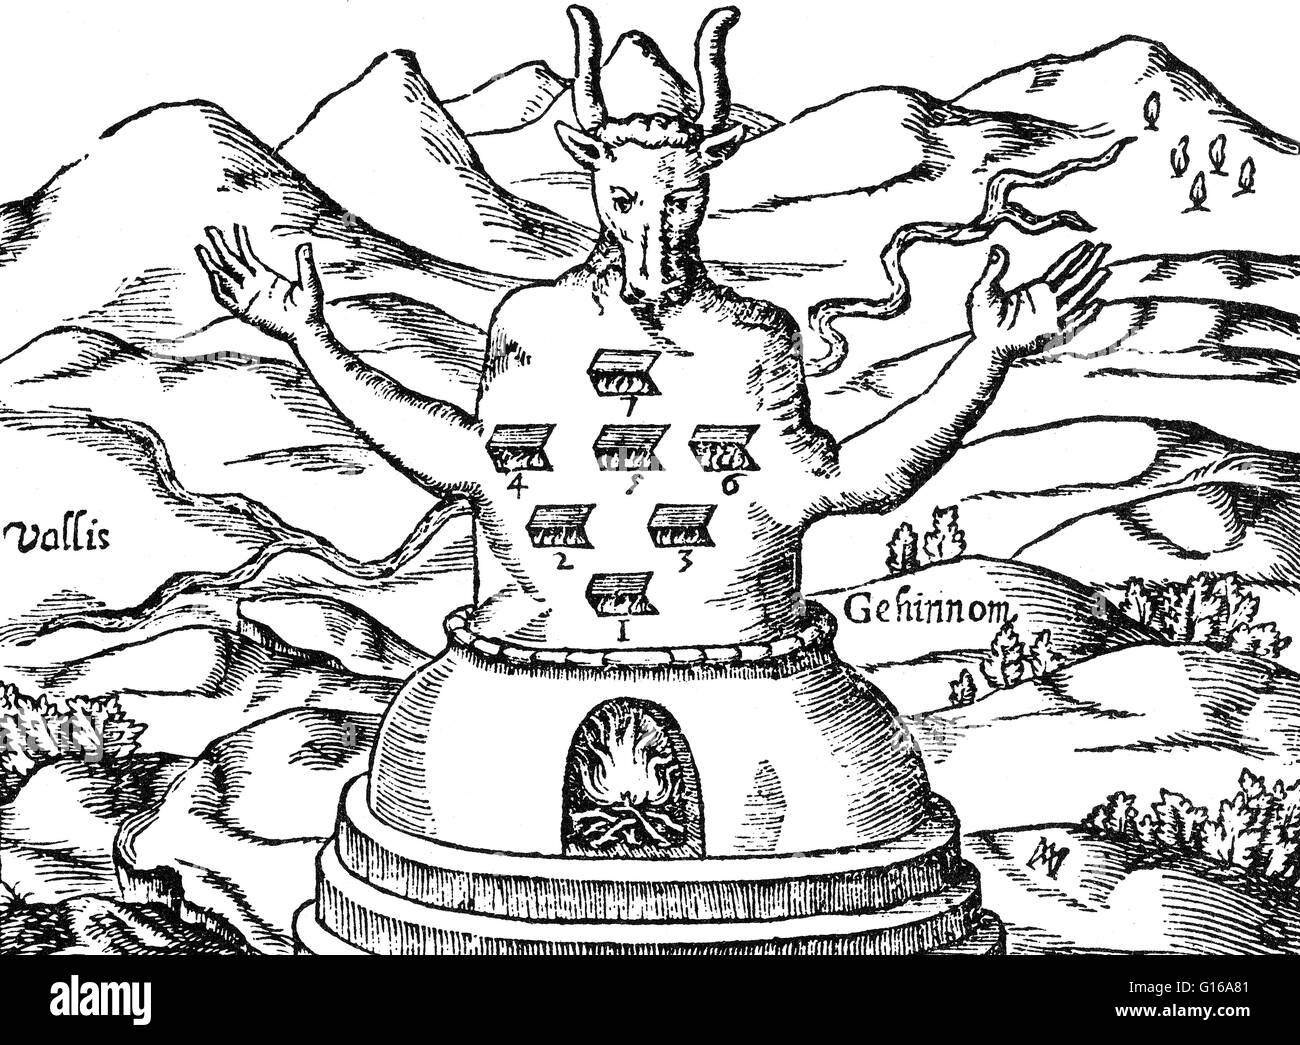 The sun god of the Ammonites and sometimes associated with the Sumerian Baal, although Moloch was entirely malevolent. Stock Photo